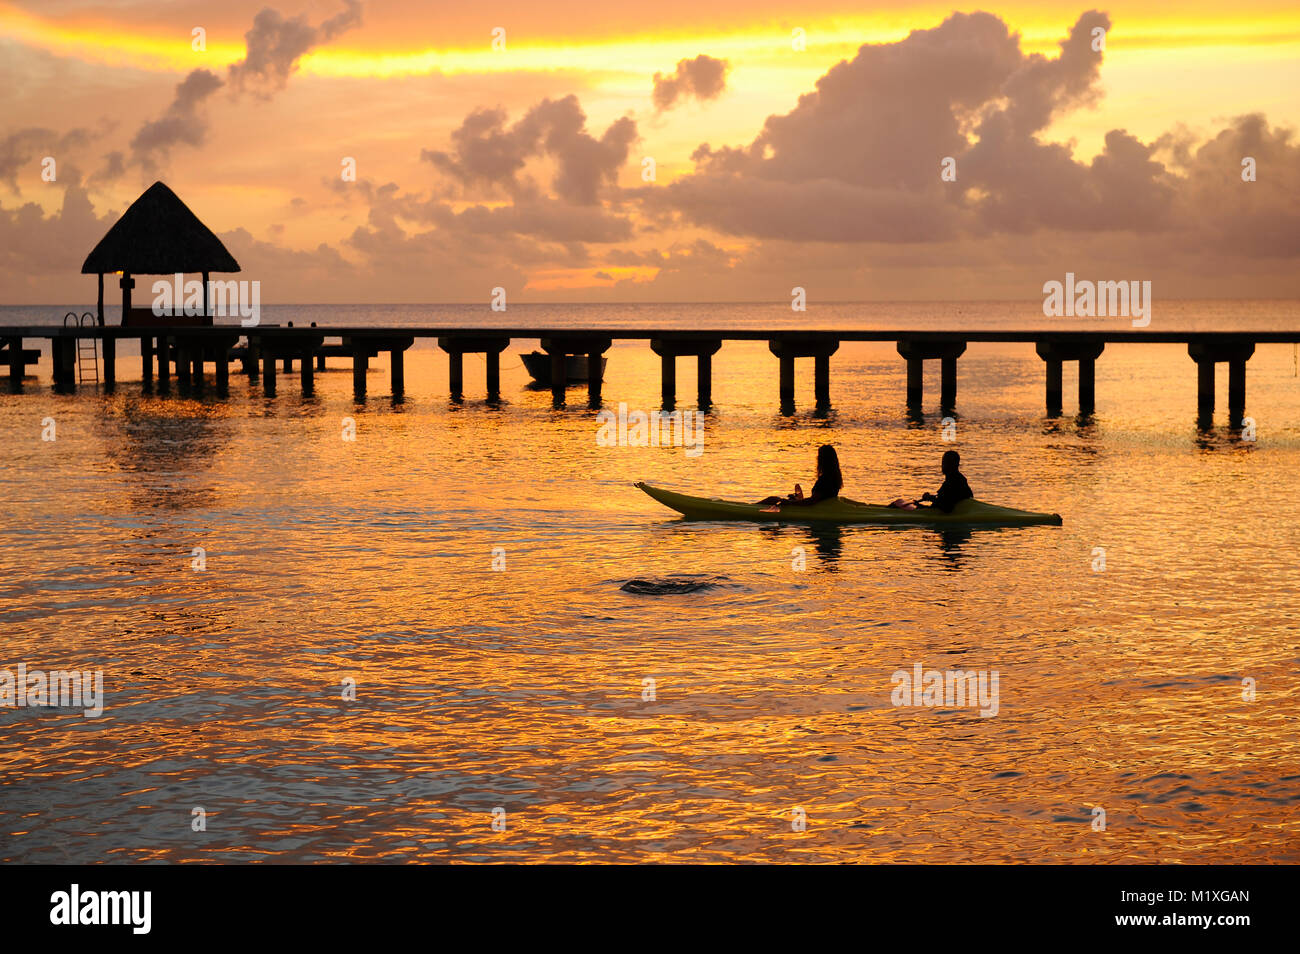 Man and woman kayaking at sunrise in Rangiroa - Stock Image